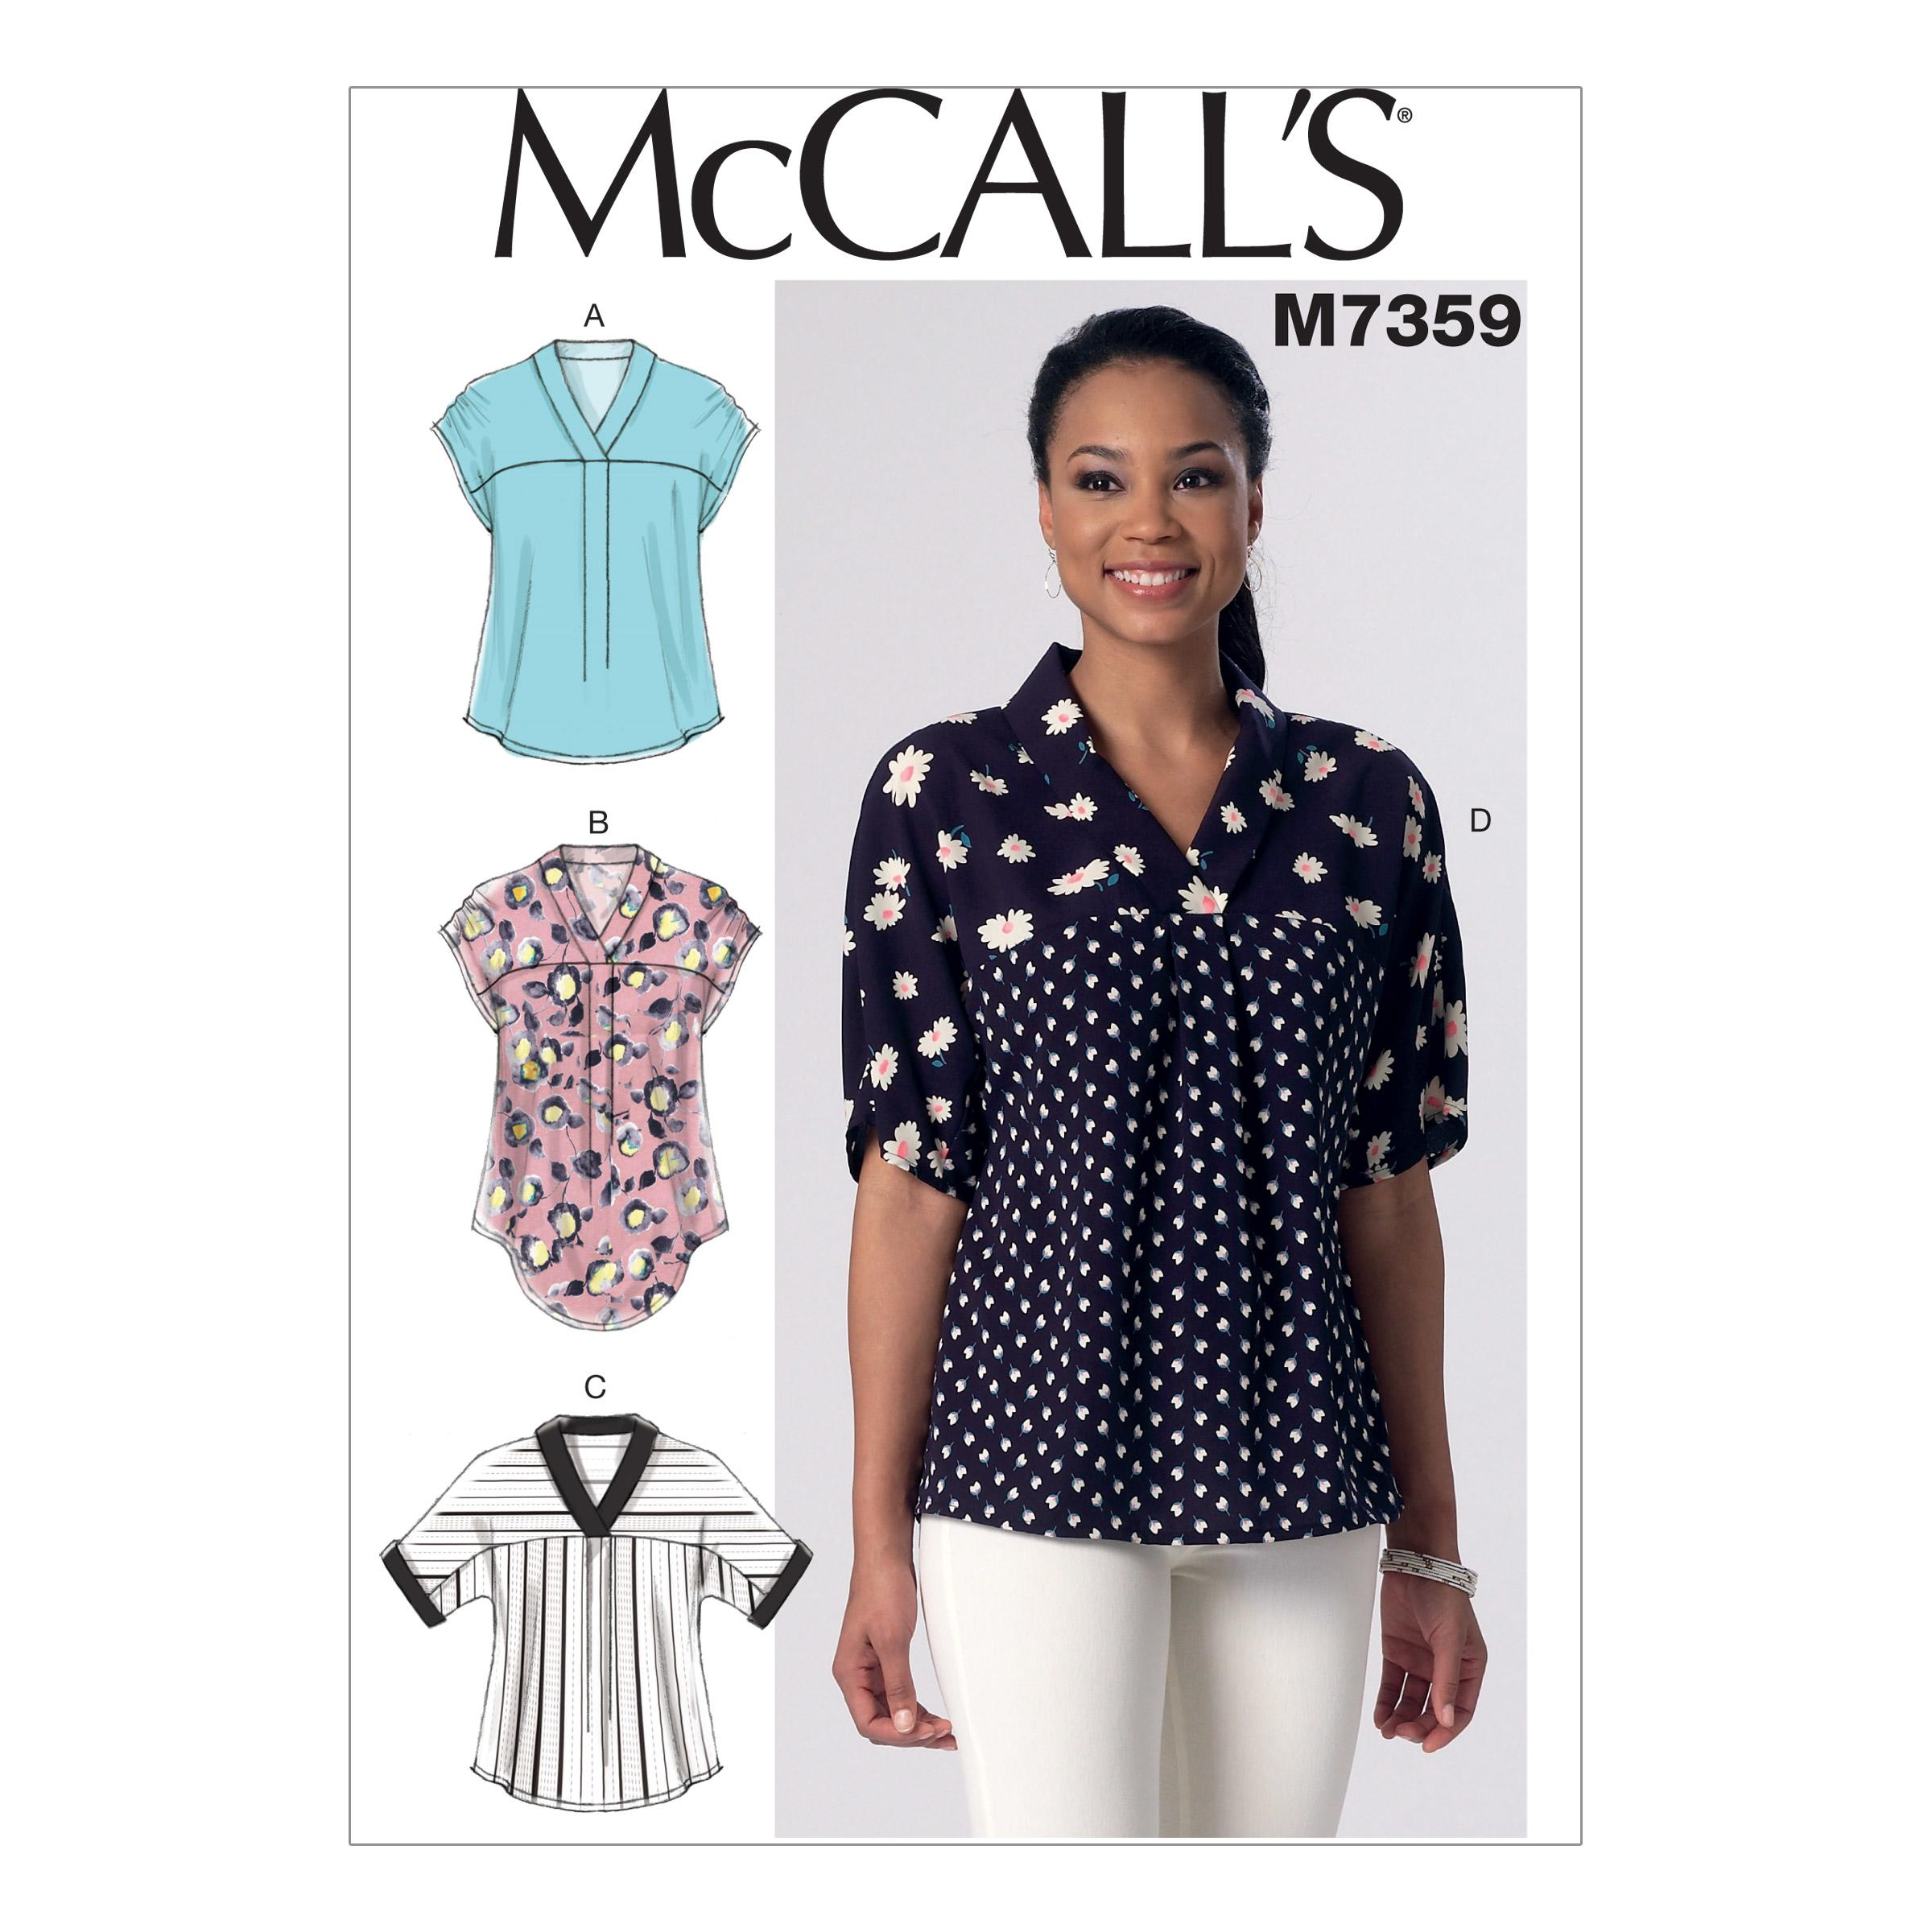 McCalls M7359 Tops/Tunics